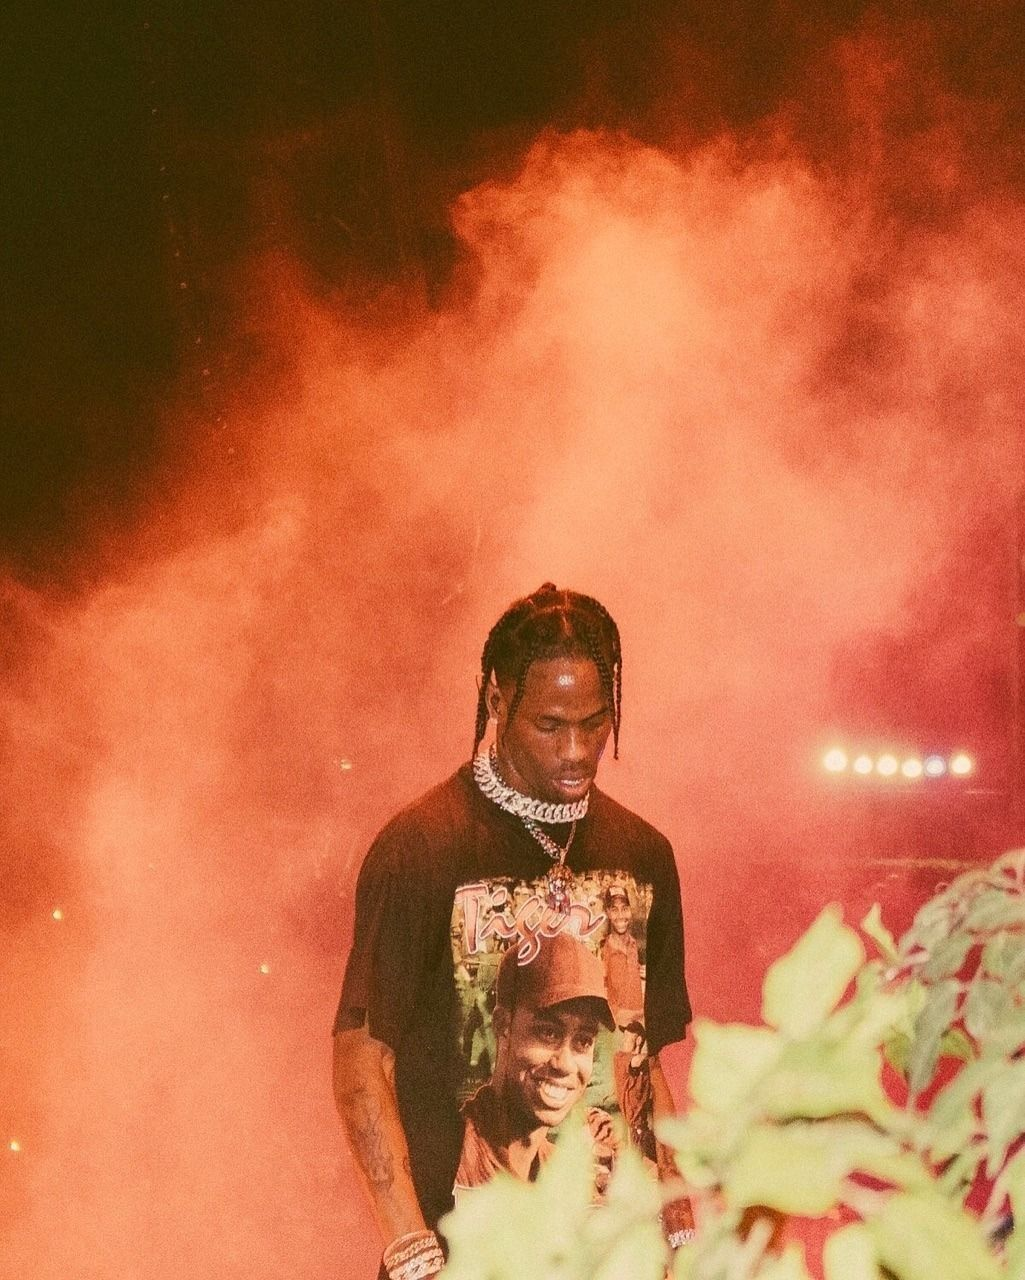 Pin By Ayleksis On Travis Scott Travis Scott Wallpapers Travis Scott Rap Wallpaper